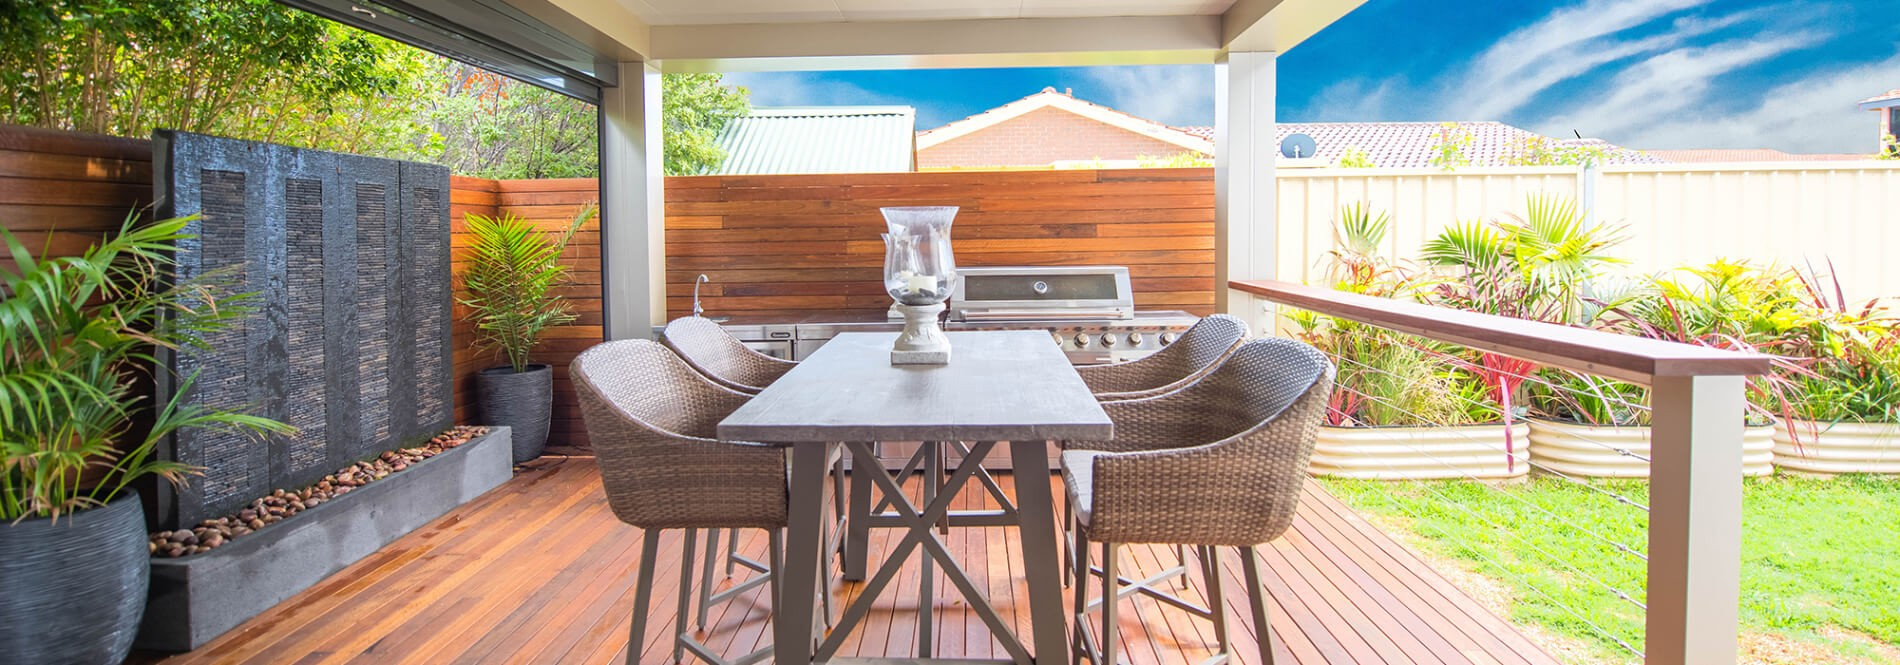 Outdoor Living Designs Adelaide